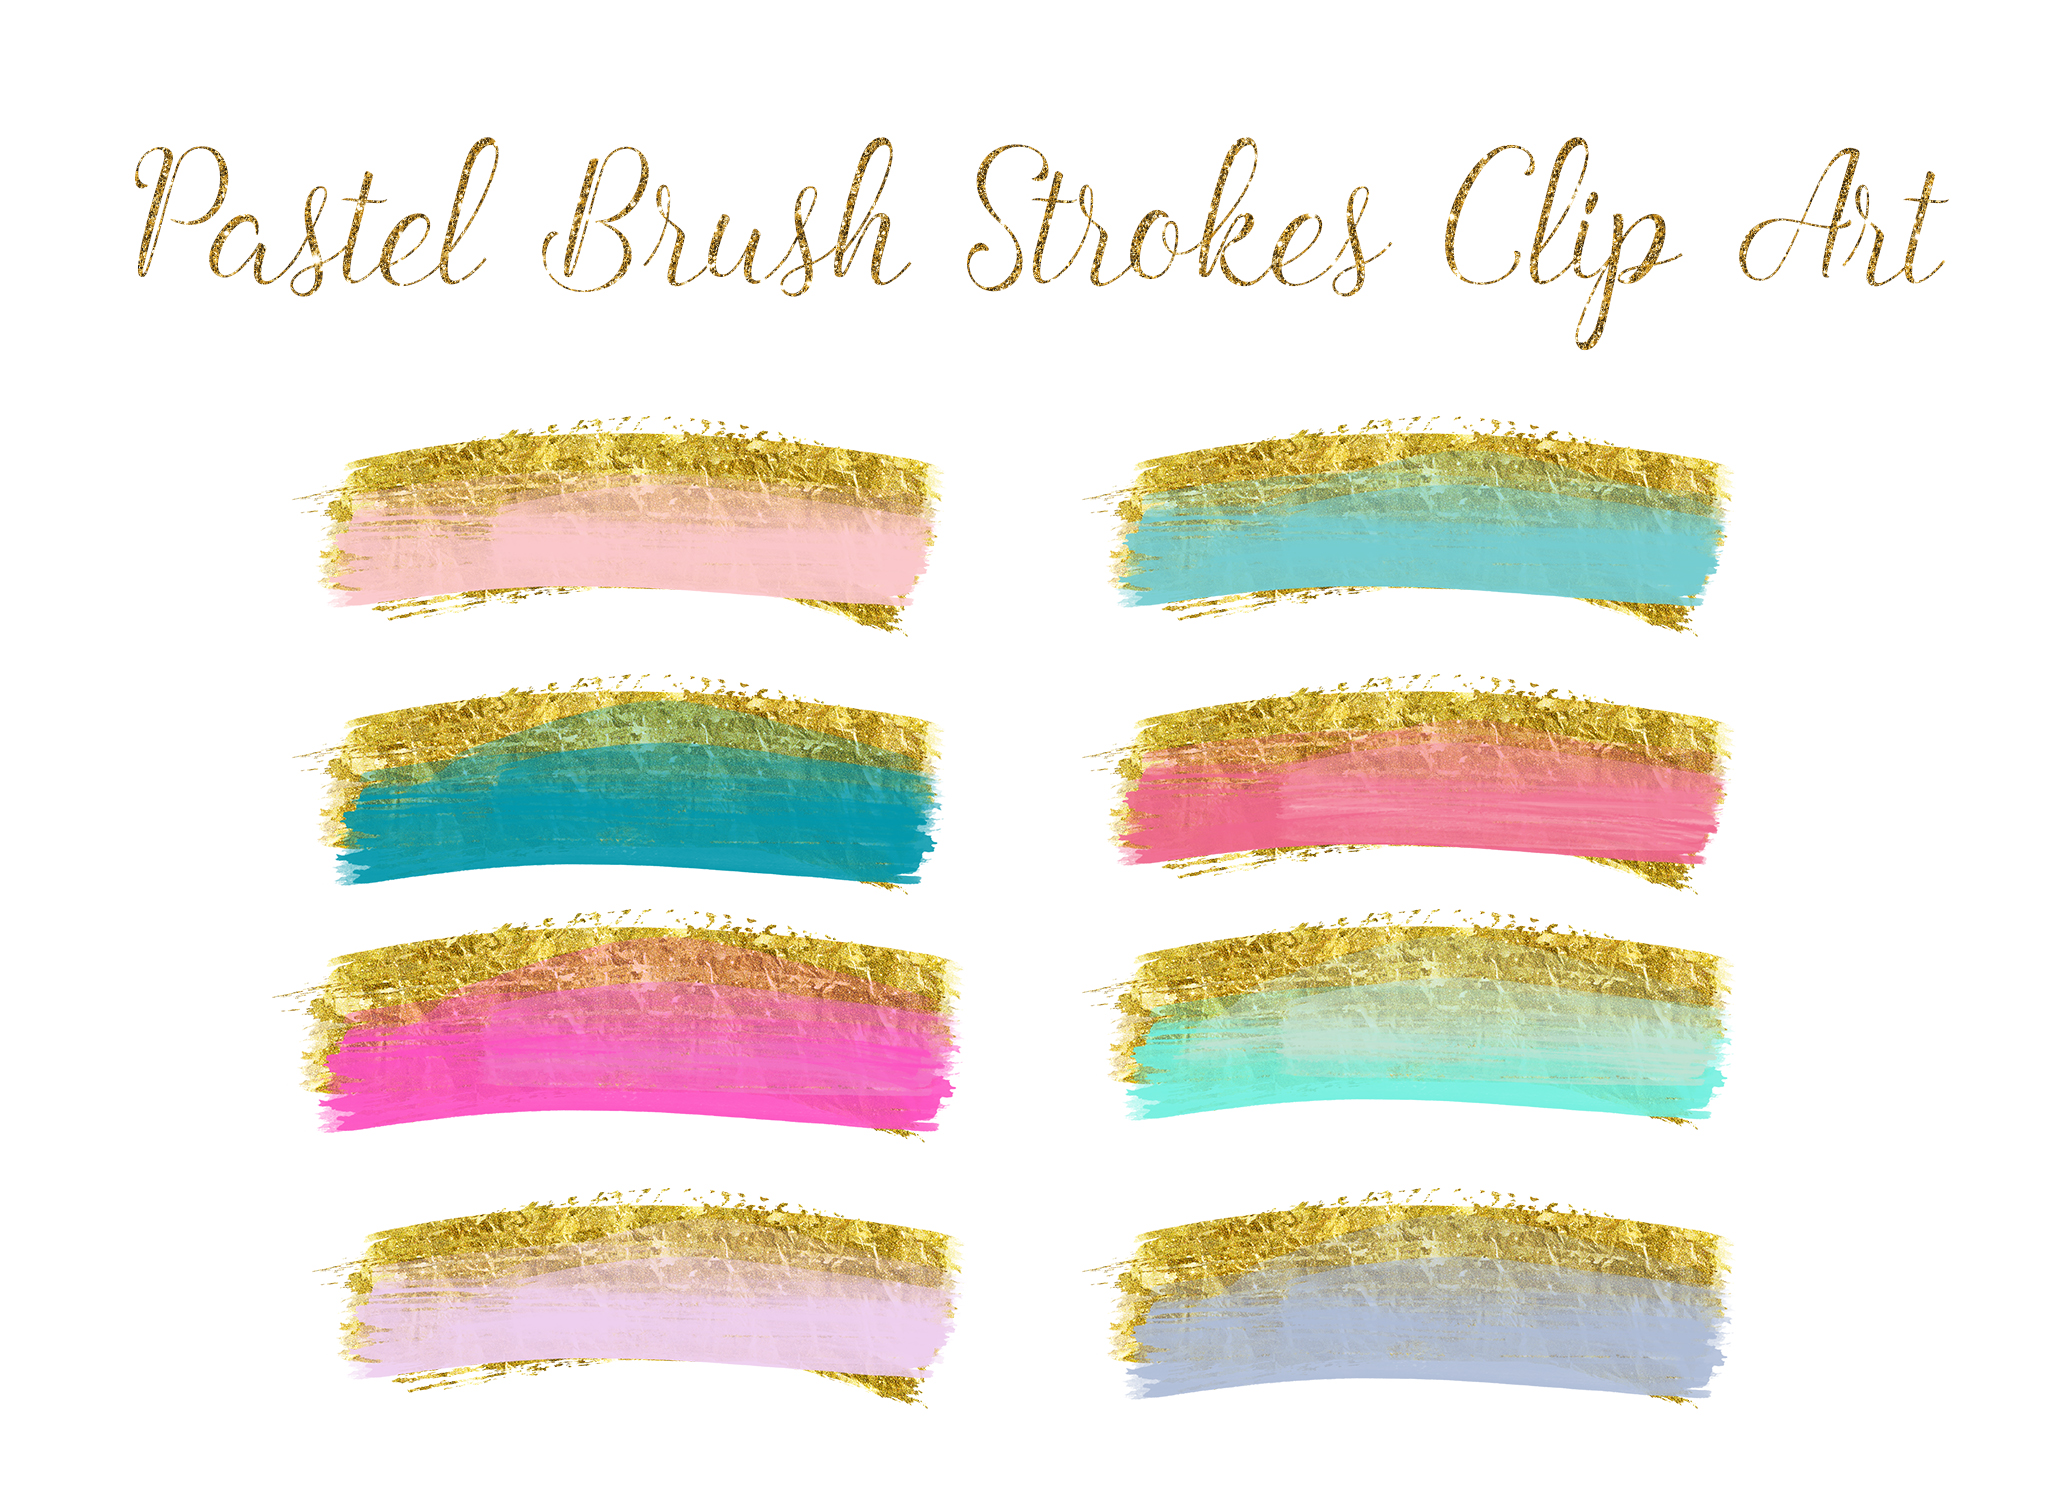 brush strokes clip art, gold brush clipart, gold paint clipart, wedding gold Paint Clipart, gold ink strokes clipart, watercolor clip art example image 2